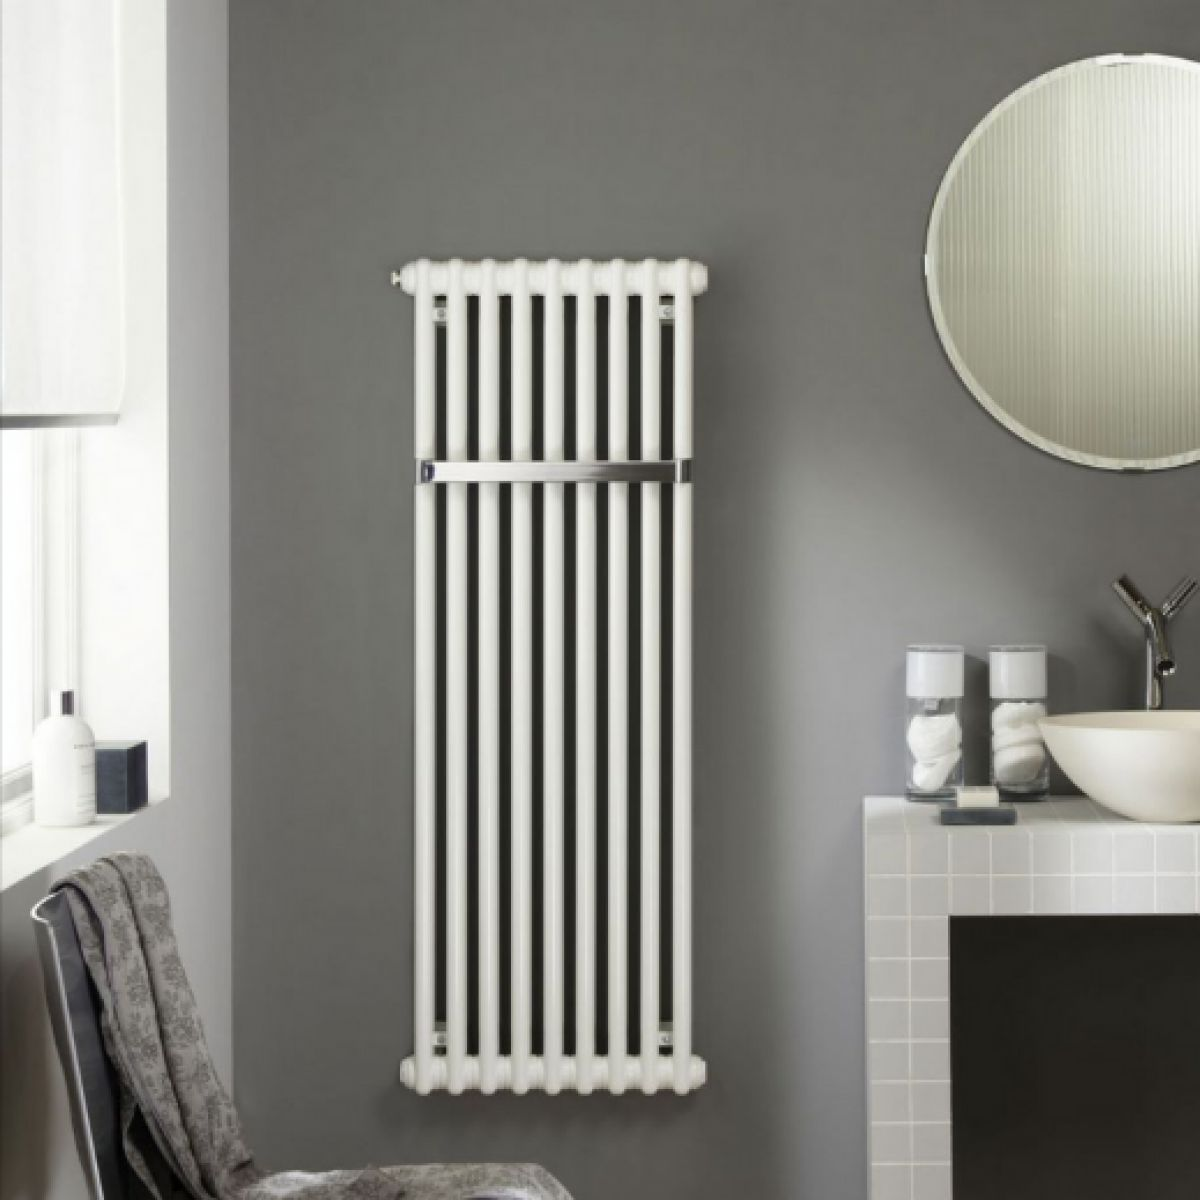 zehnder charleston bar cloakroom radiator uk bathrooms. Black Bedroom Furniture Sets. Home Design Ideas